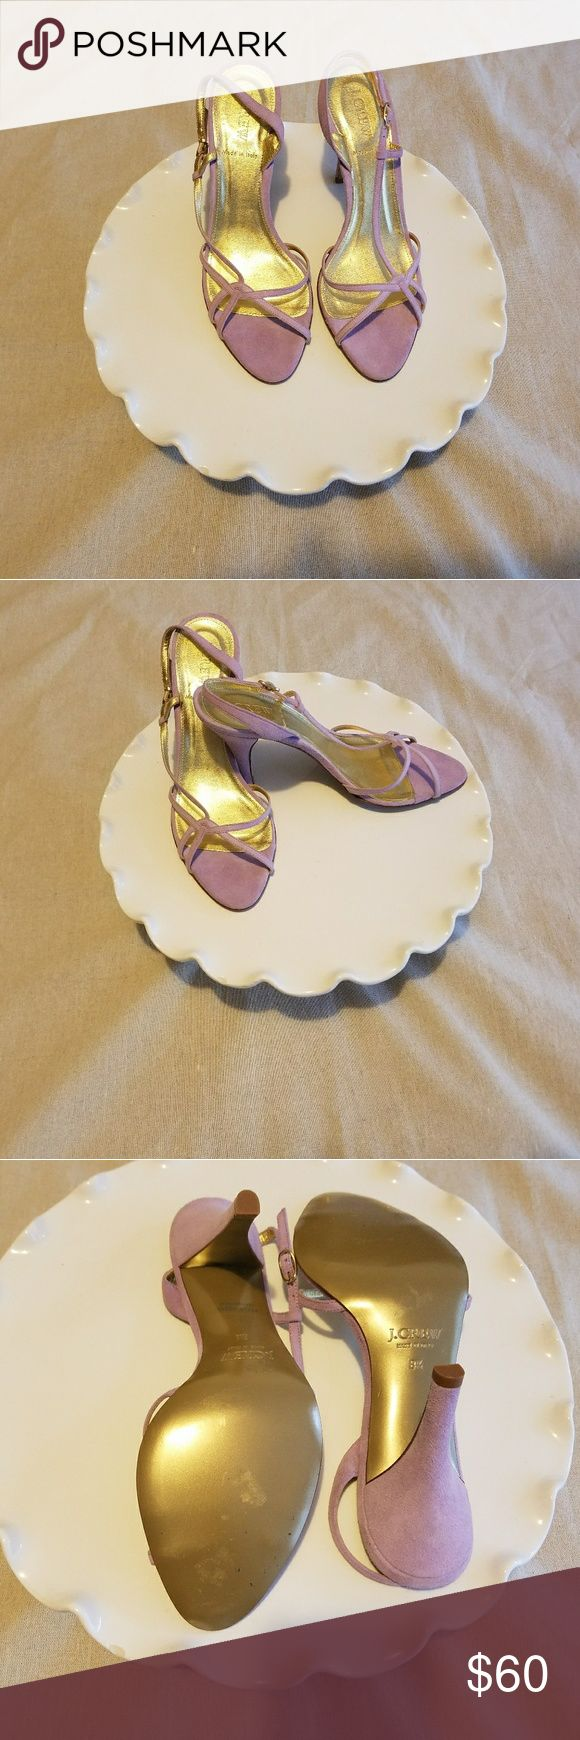 J Crew Nicolette Suede Slingback Sandal Heels 8.5 NWOT Super cute light purple/lavendar scrappy heels from J Crew J. Crew Shoes Sandals